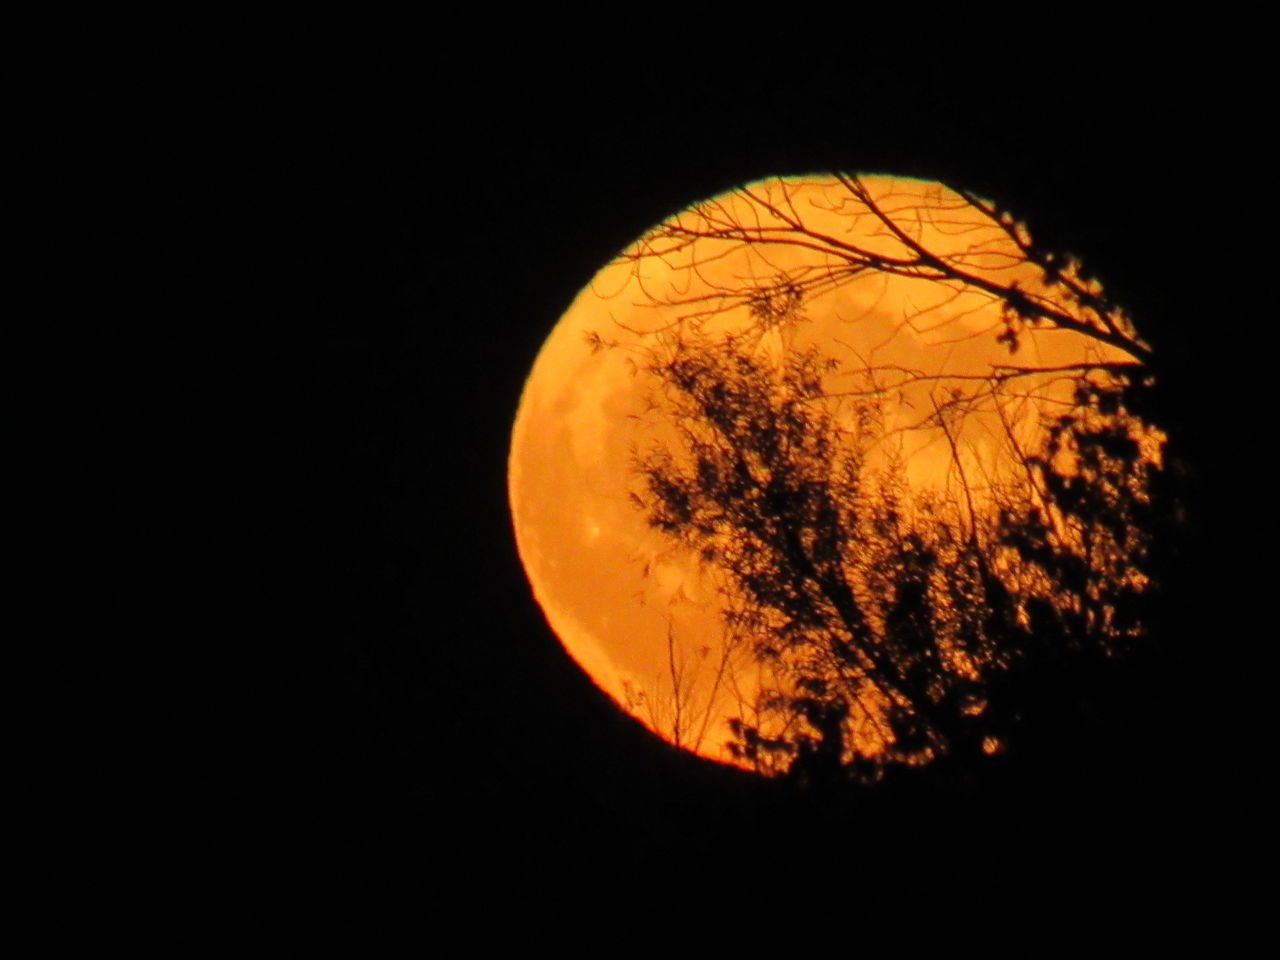 Astronomy Planet - Space Moon Space Night Outdoors Nature Solar System No People Beauty In Nature Planet Earth Supermoon Beavermoon Take A Walk With Me Loudthougts IMYE